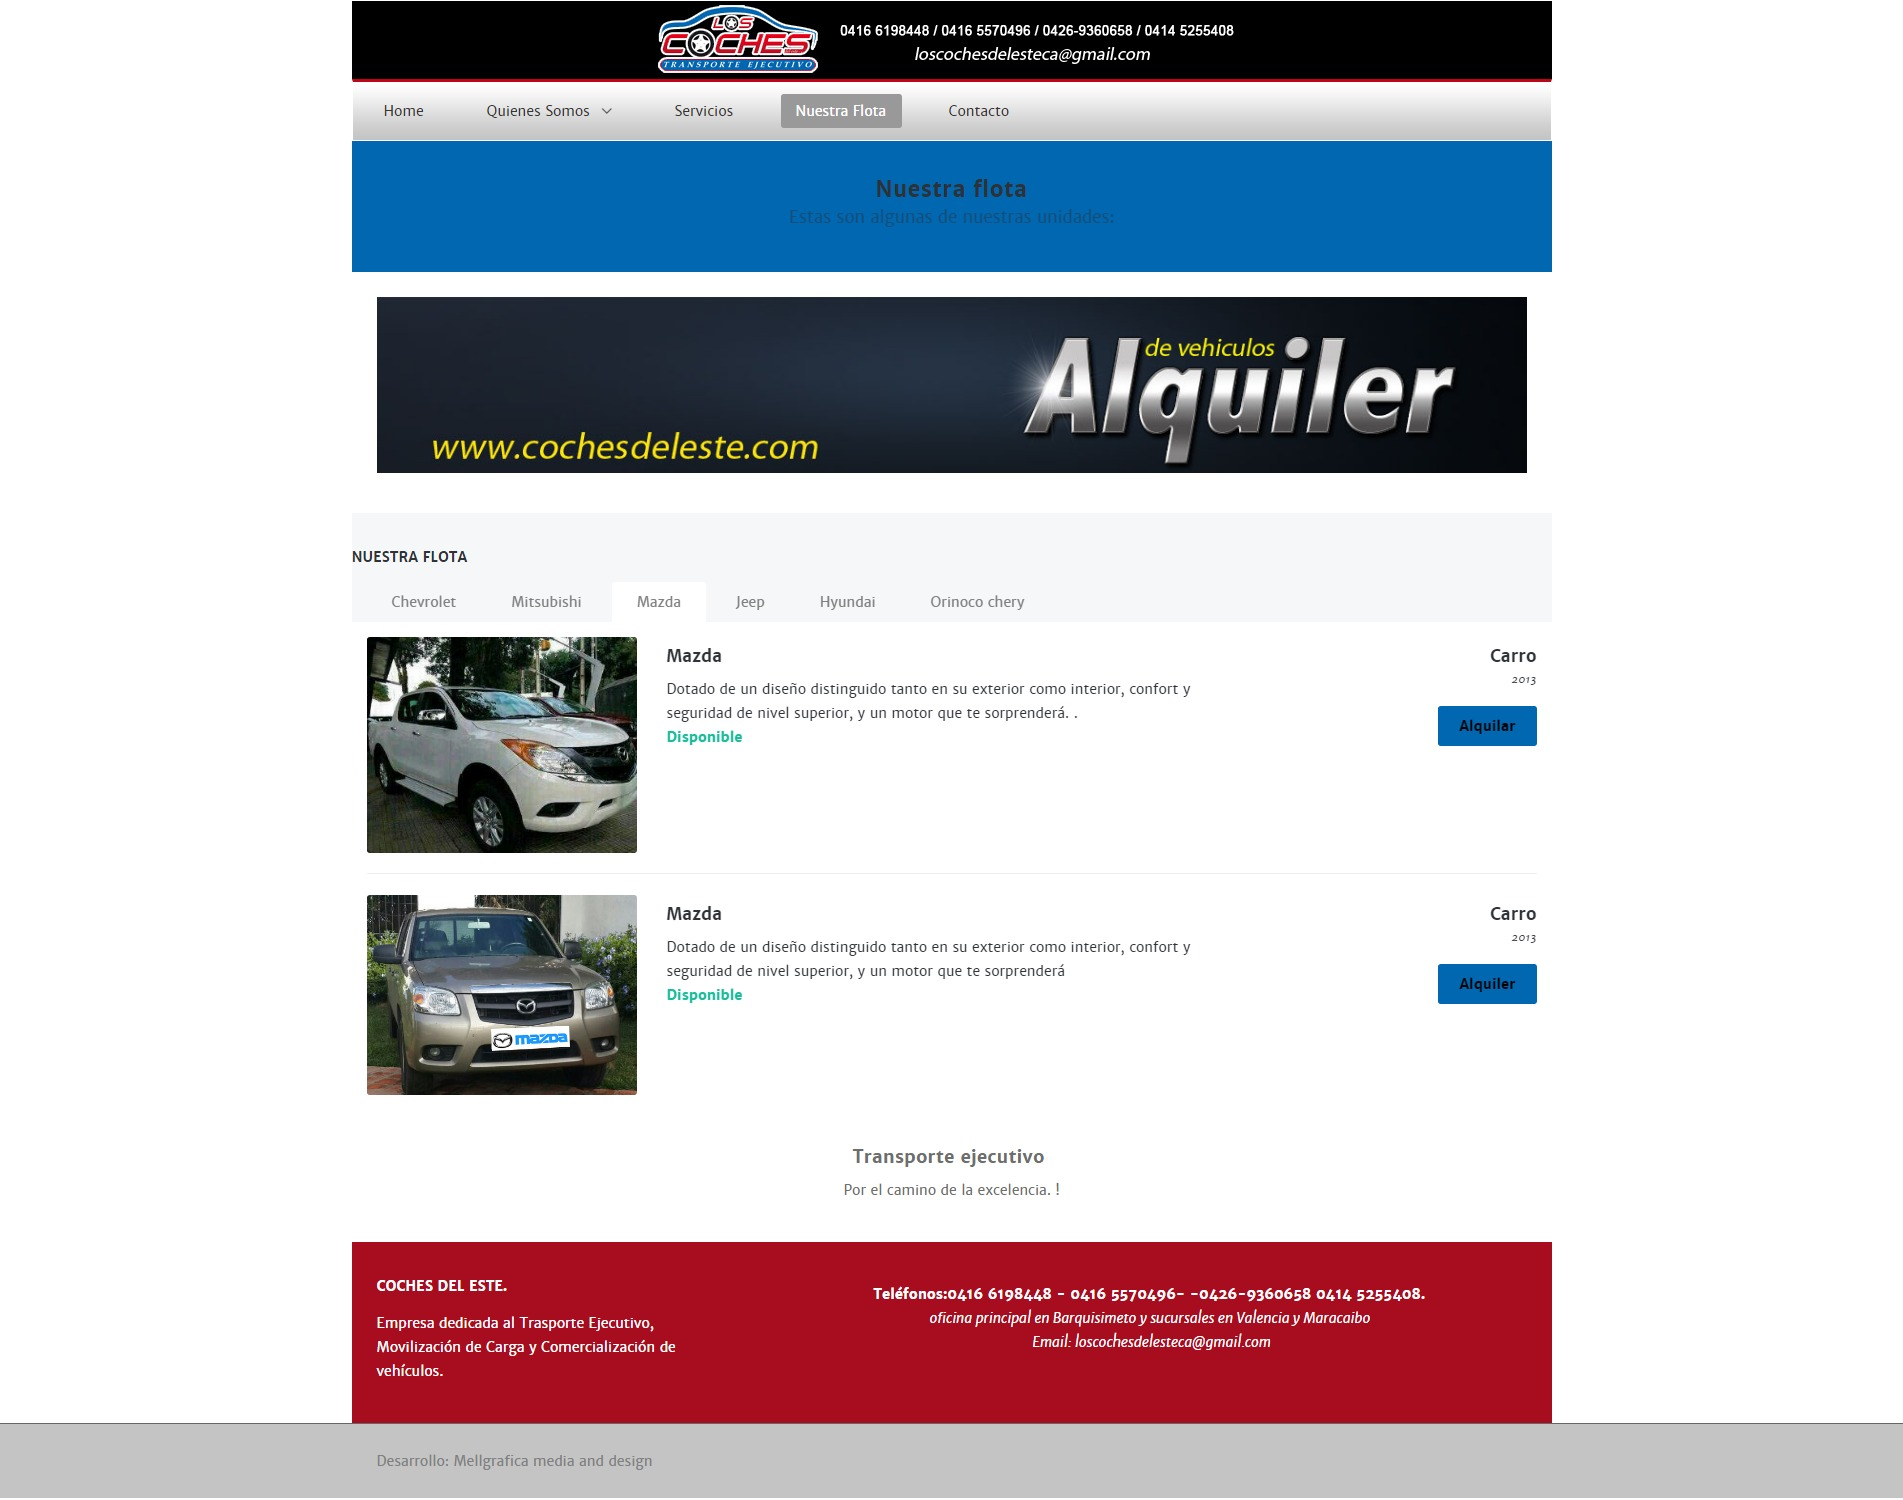 Website Los Coches del Este